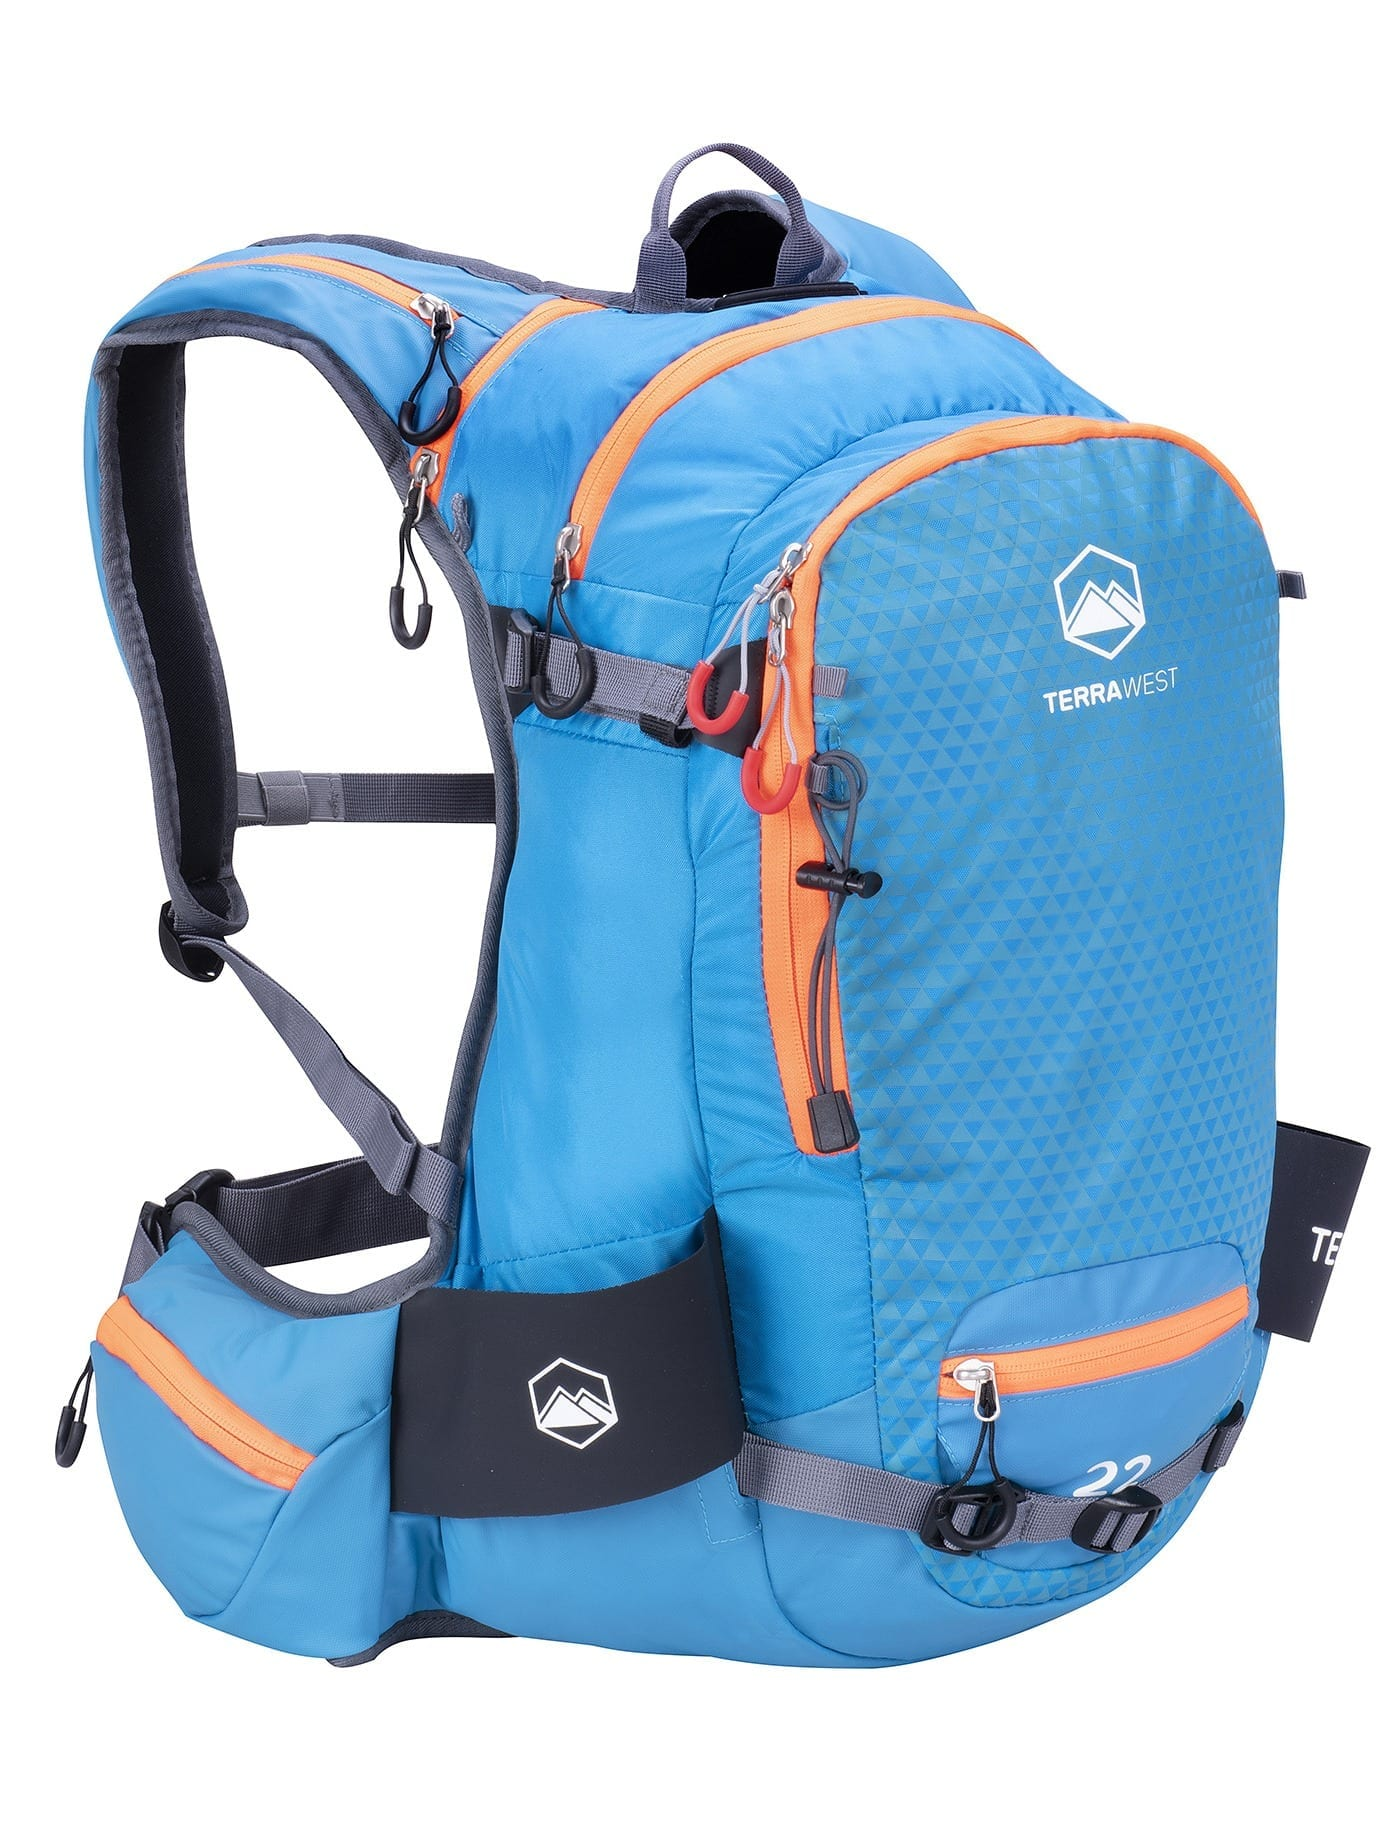 Terrawest Core 22 Backpack